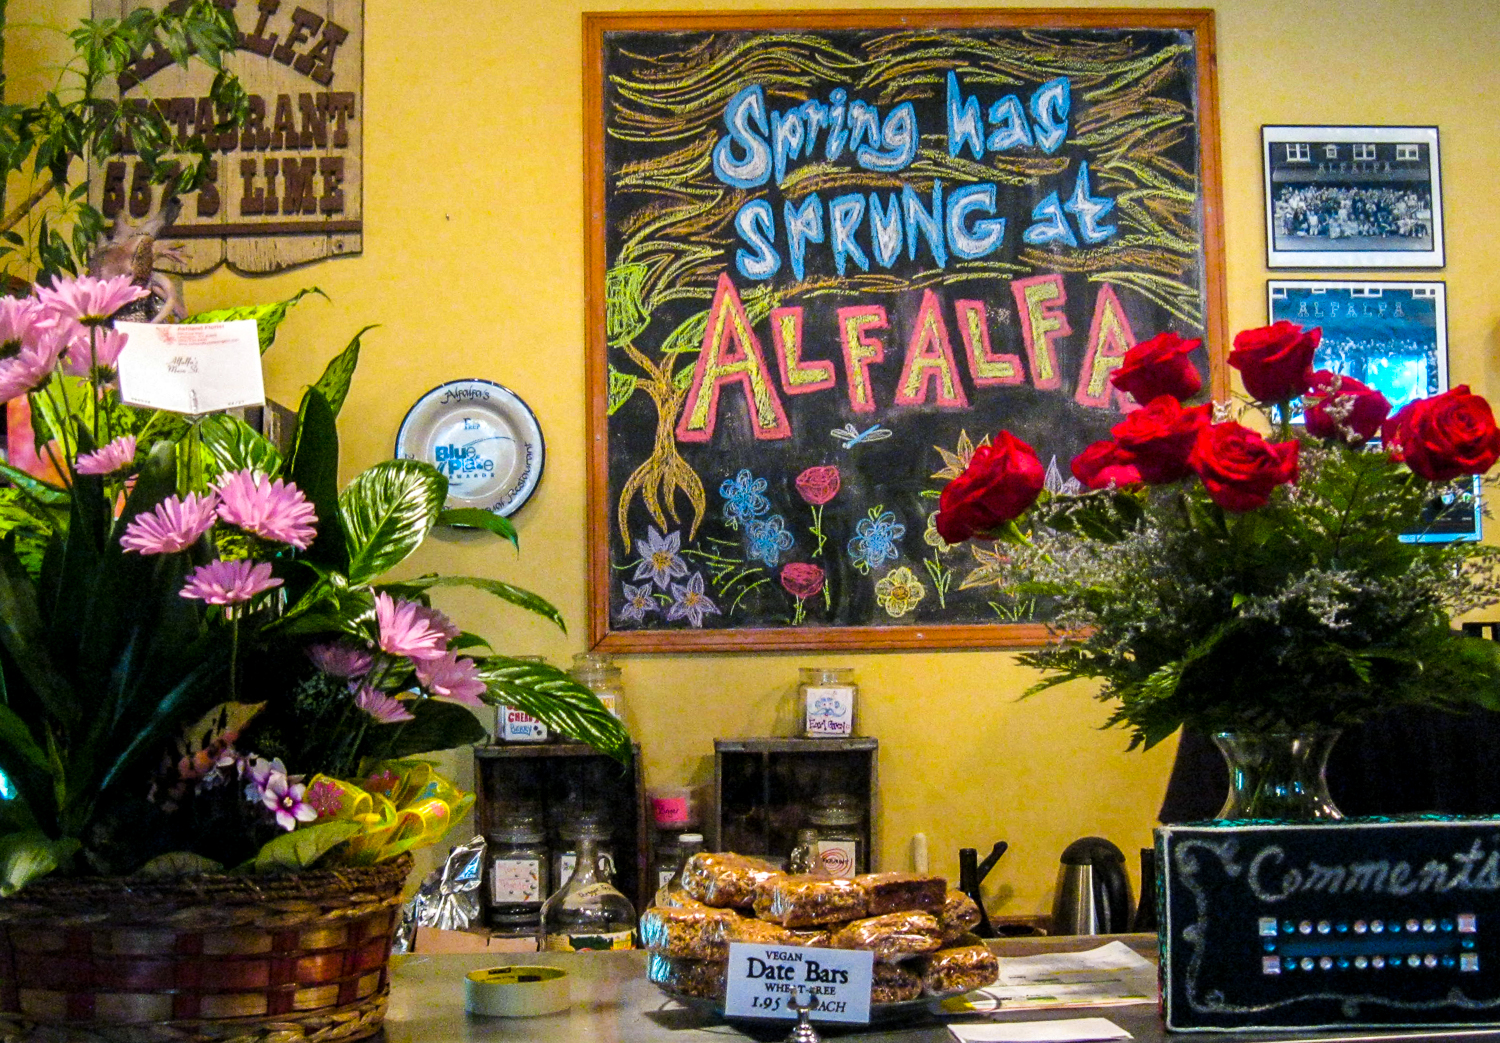 The blackboard message is just as true in the desperately sought, exuberantly welcomed spring of 2015 as it was in 2013, when Alfalfa celebrated its 40th anniversary.